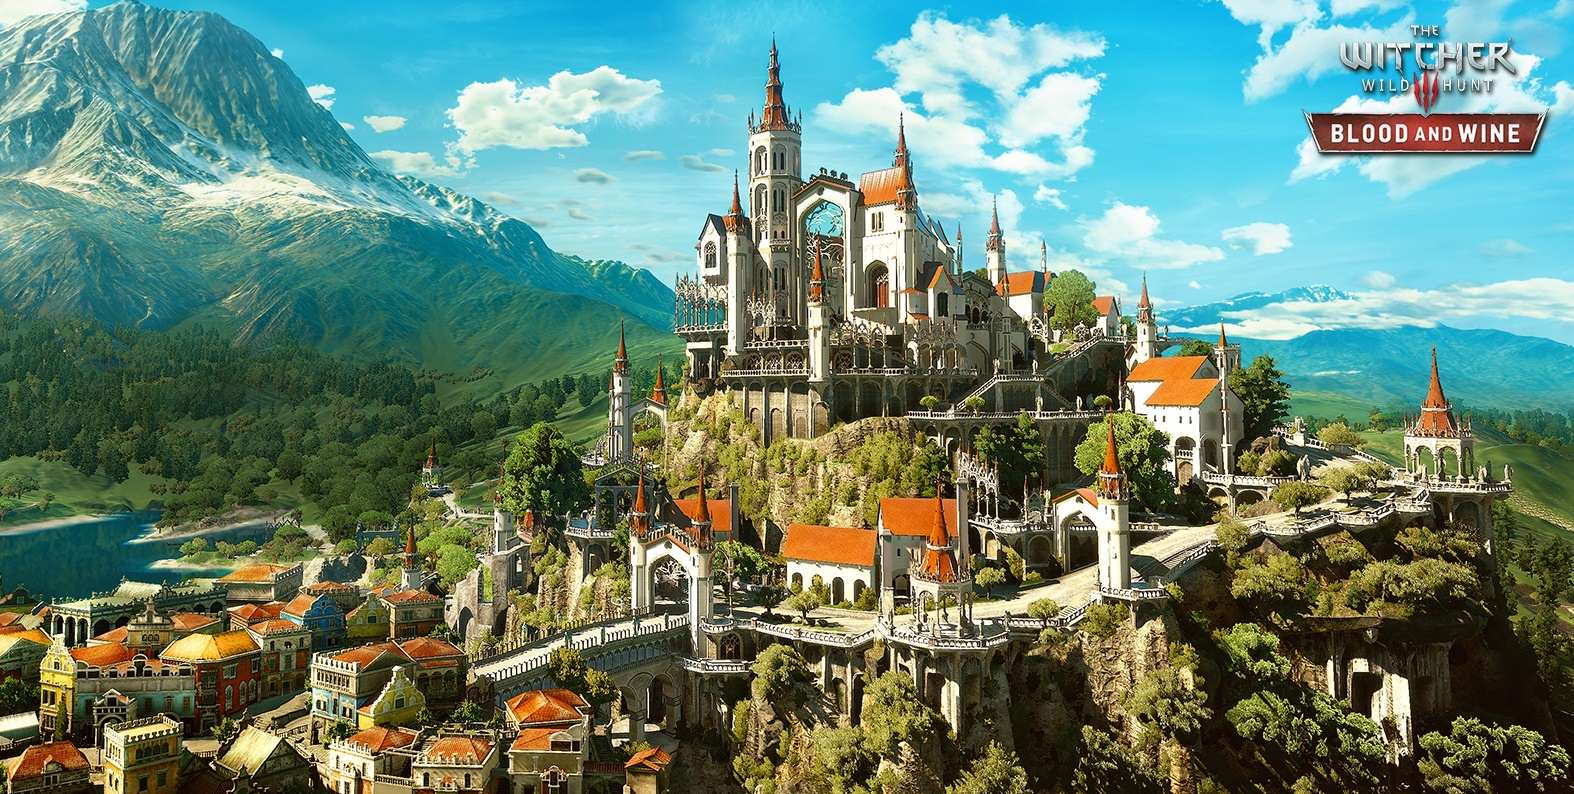 Gorgeously Gory Trailer For Witcher 3s Blood And Wine DLC Drops the witcher 3 blood and wine thumb 1